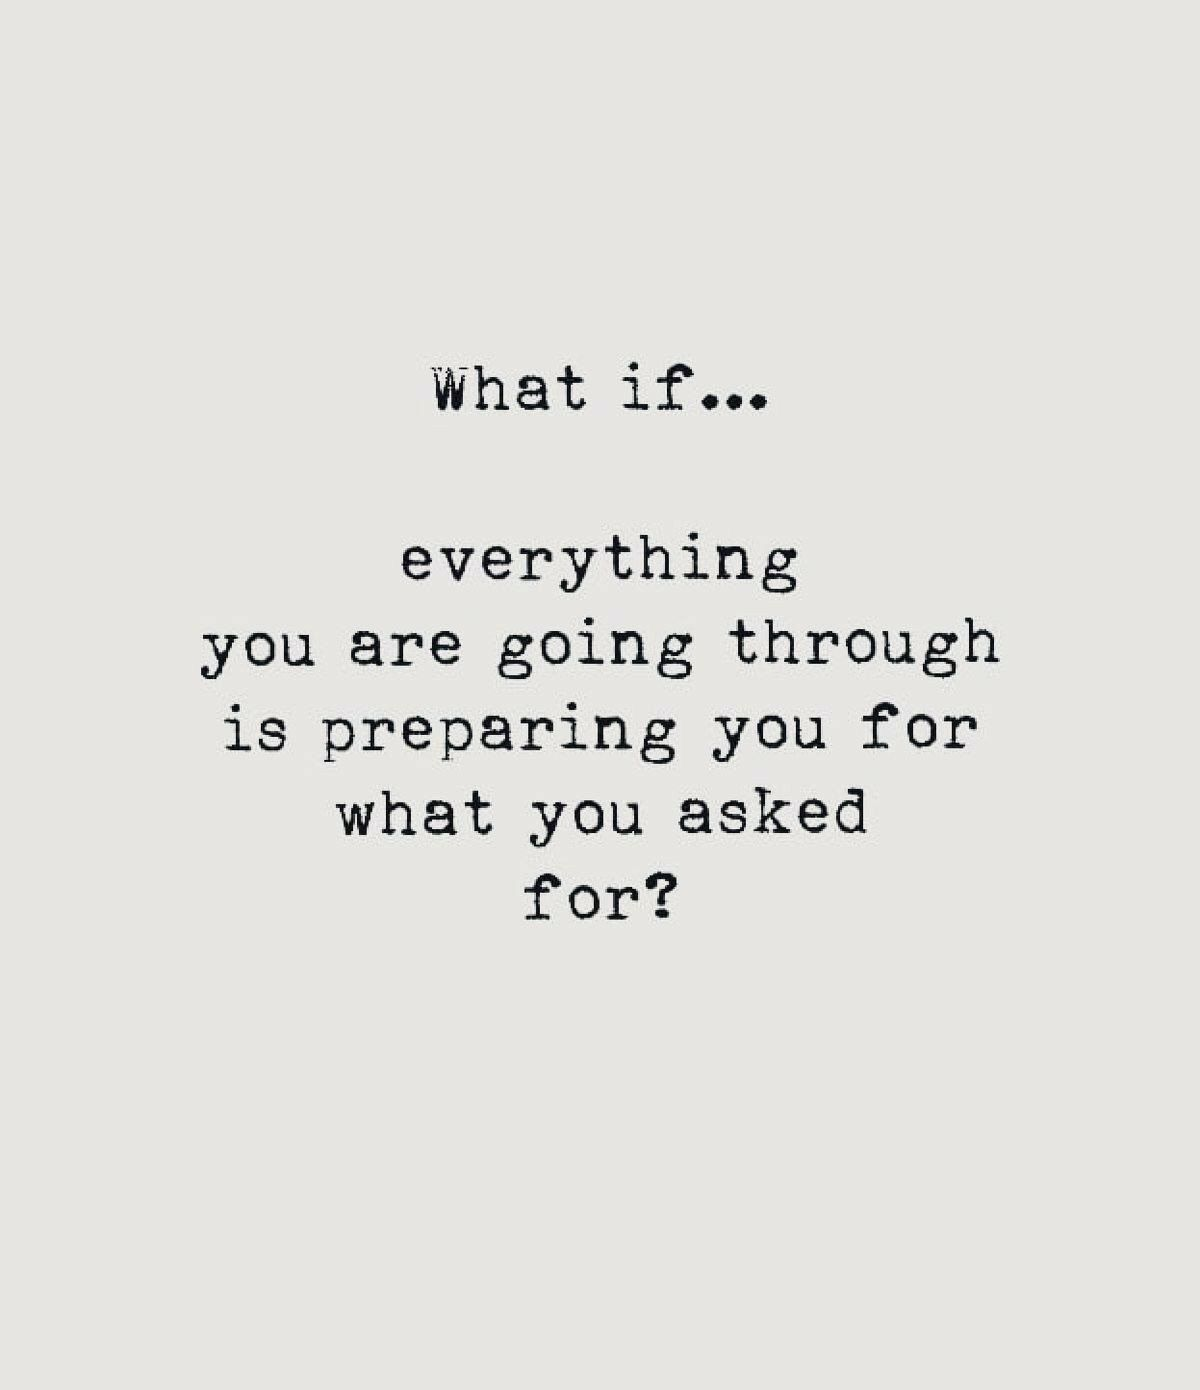 What if everything that you are going through is preparing you